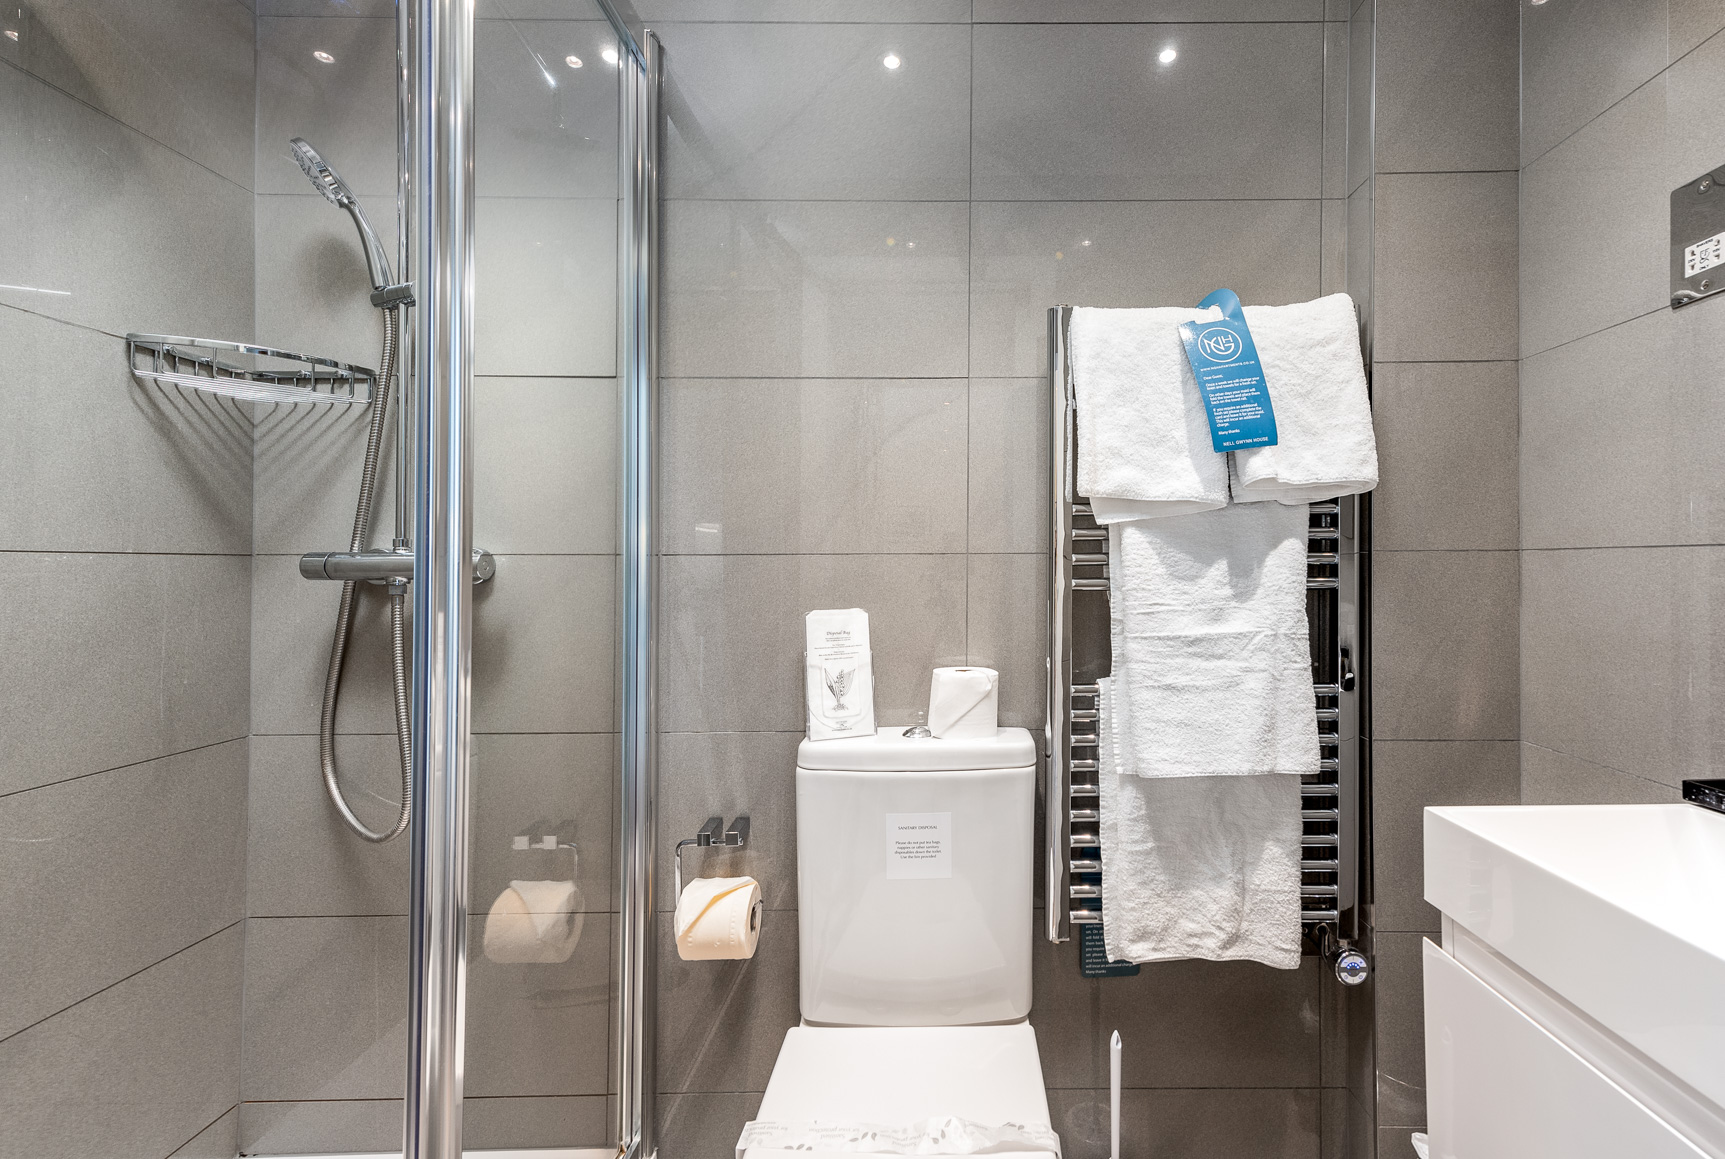 Shower at Nell Gwynn House Accommodation, Chelsea, London - Citybase Apartments